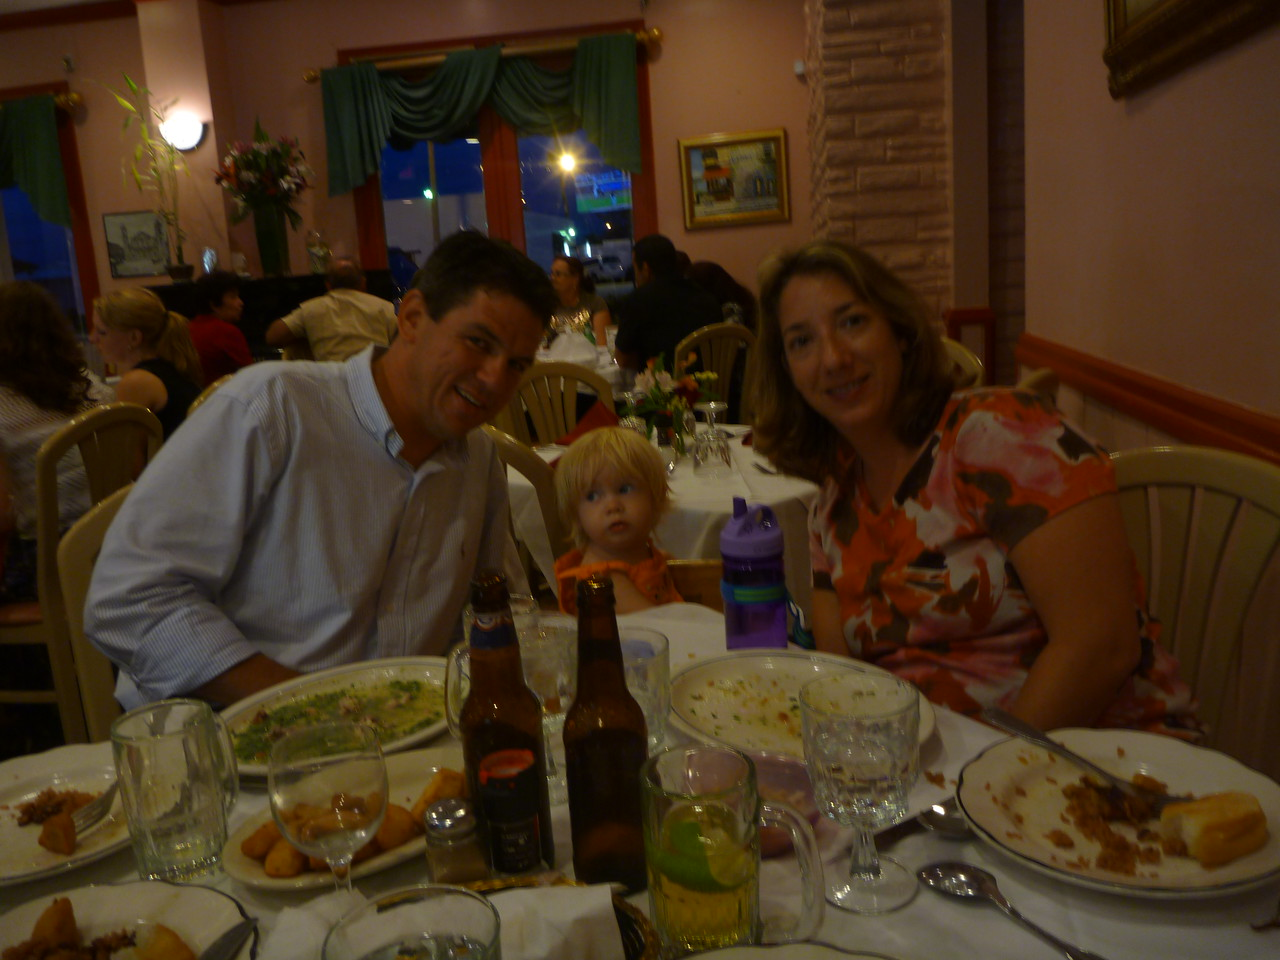 our last meal in Miami - Cuban, of course!